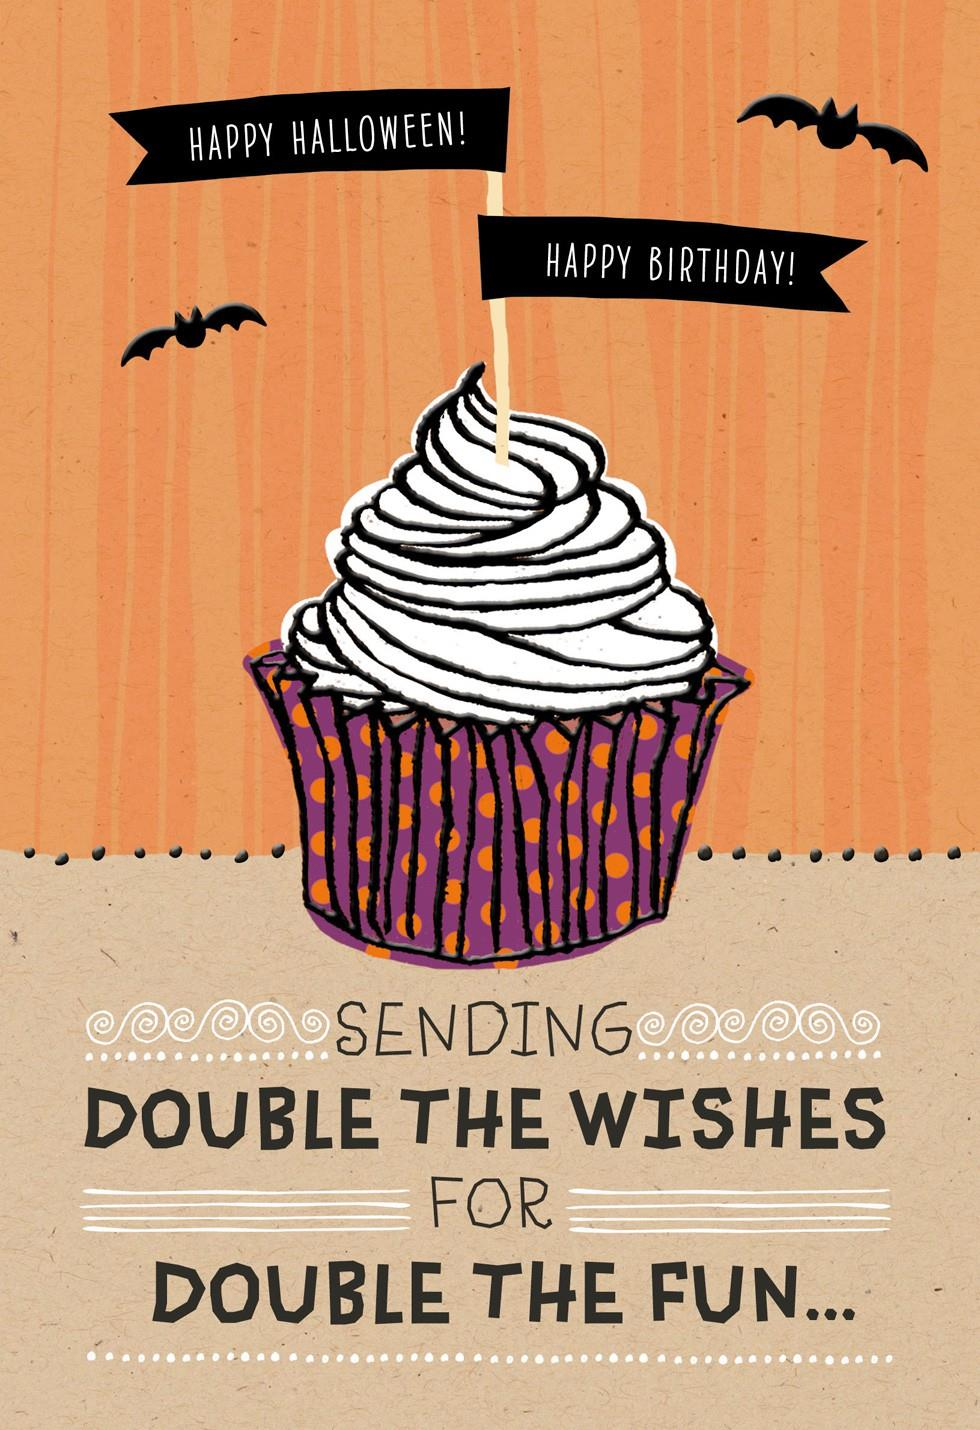 halloween birthday cupcake halloween card - Happy Halloween Birthday